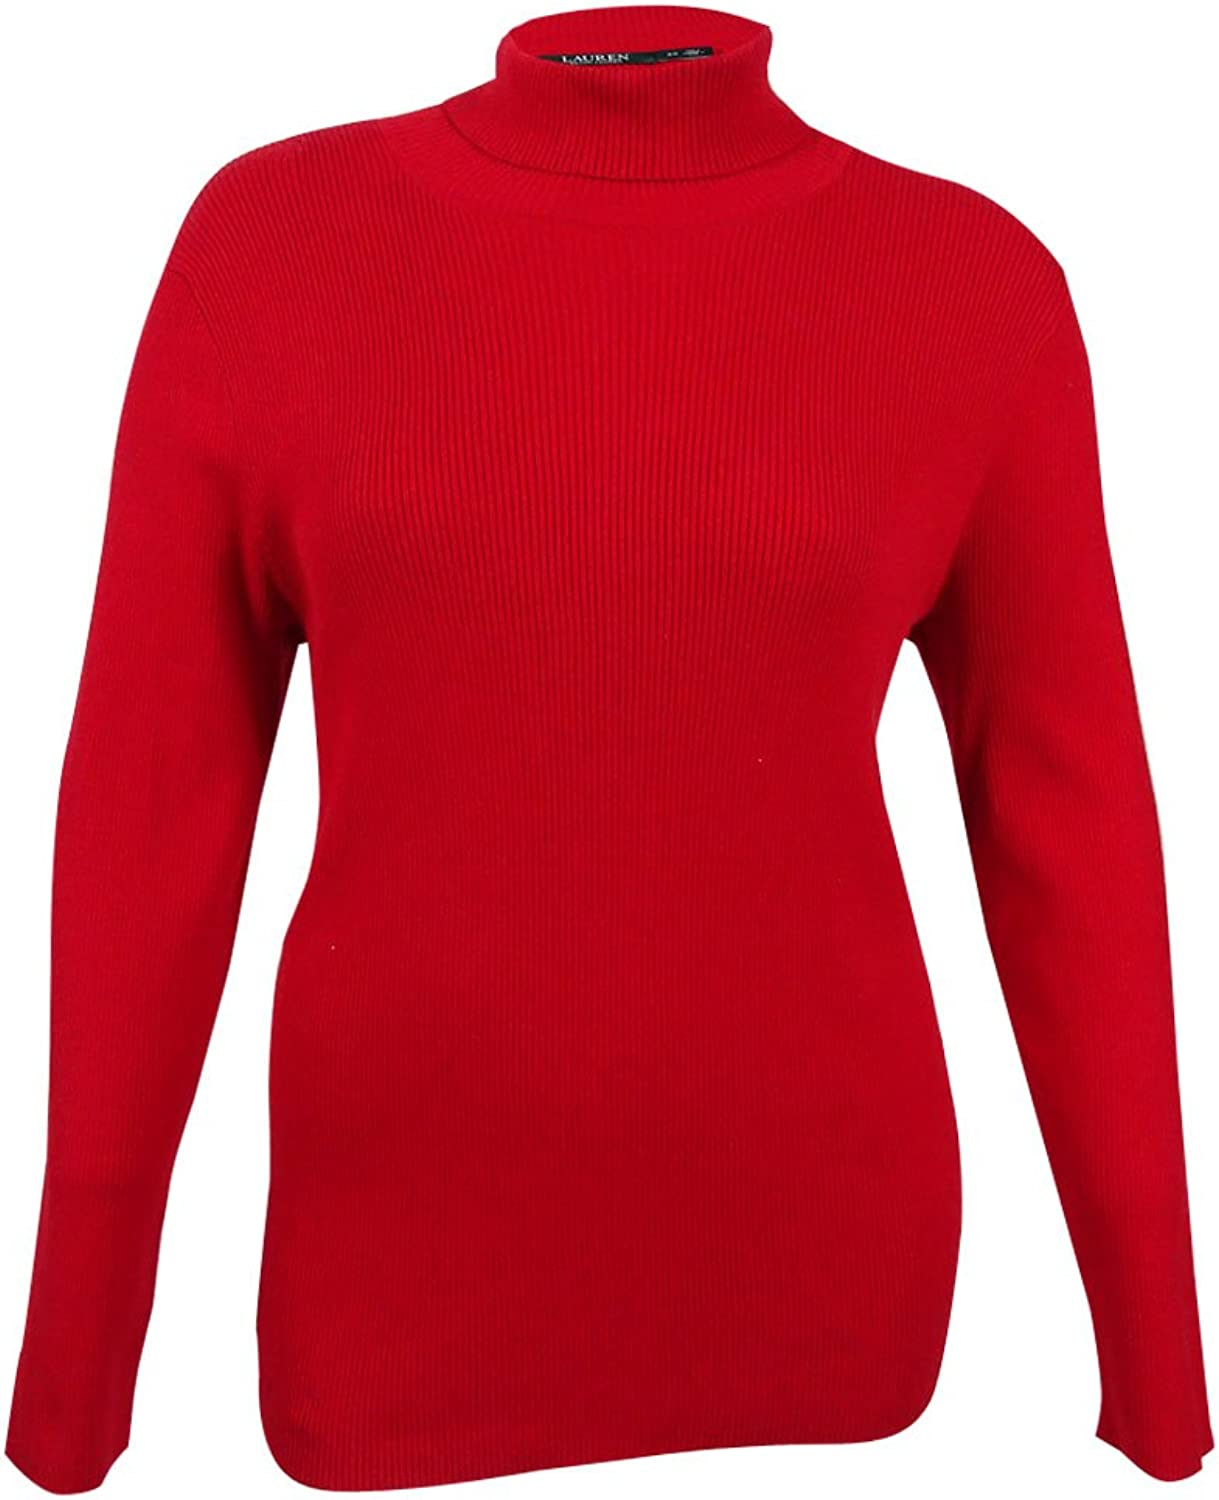 Ralph Lauren Womens Red Long Sleeve Turtle Neck Sweater US Size  XL